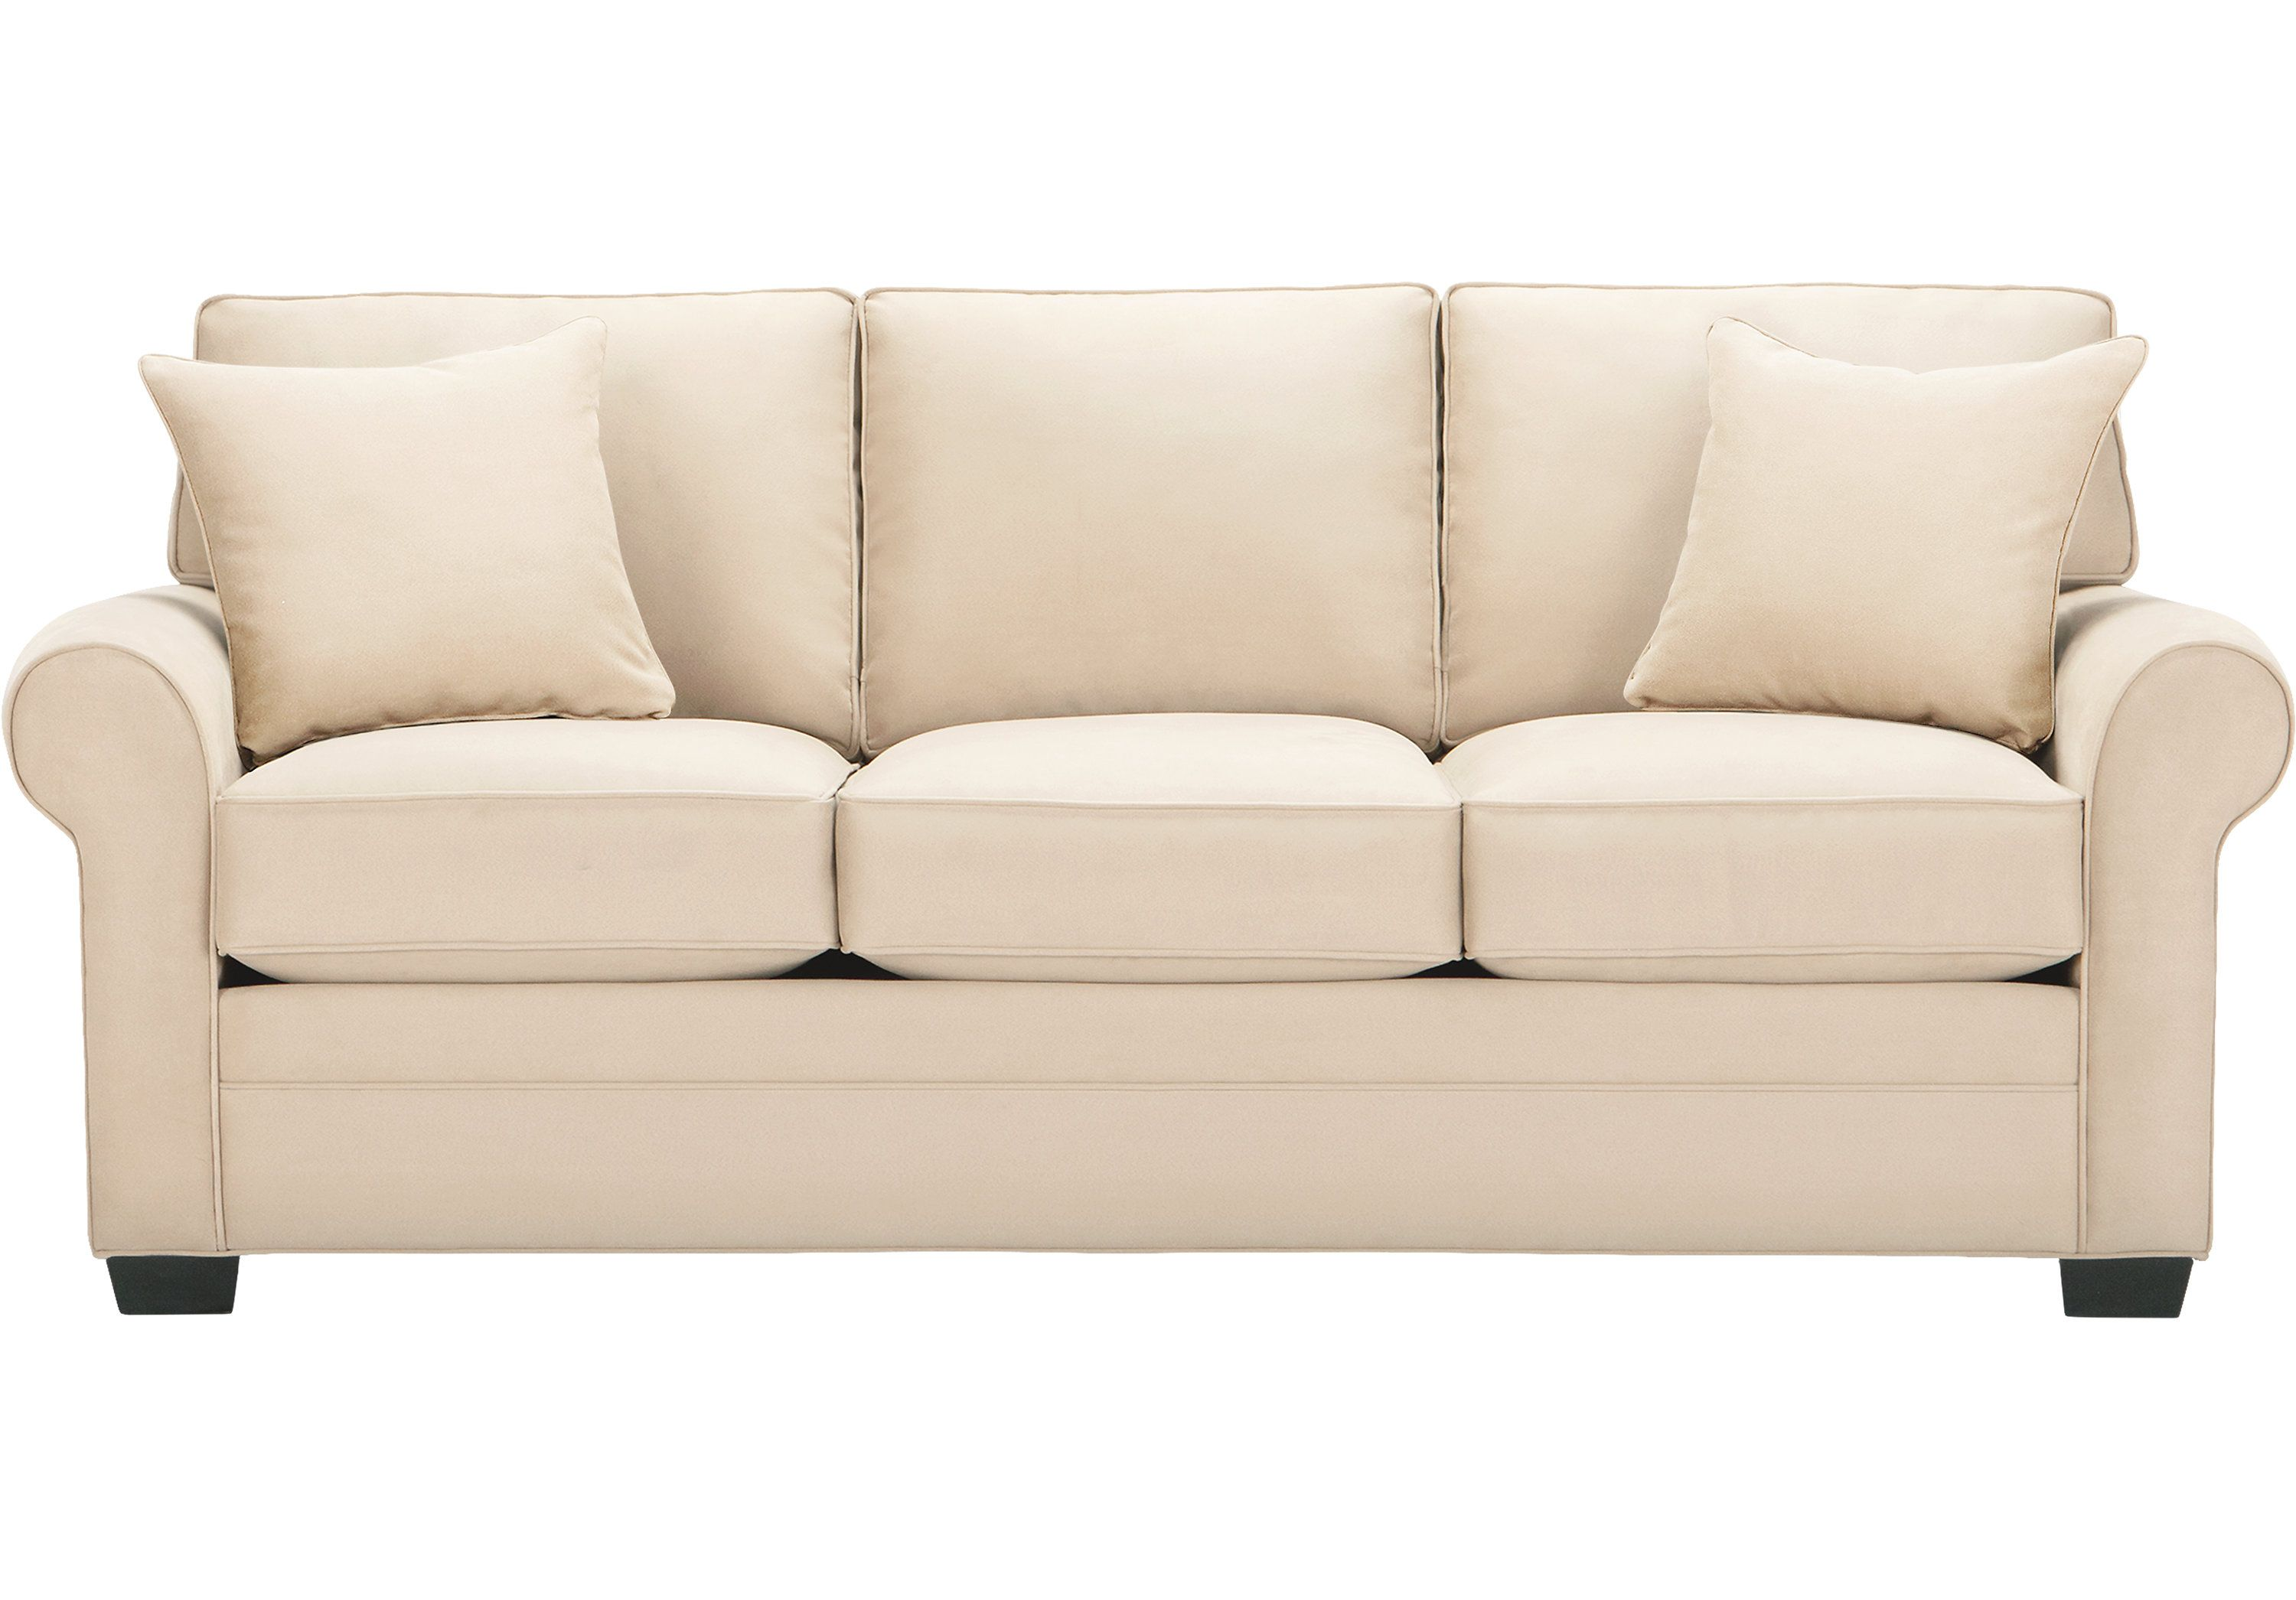 Picture Of Cindy Crawford Home Bellingham Vanilla Sofa From Sofas Furniture